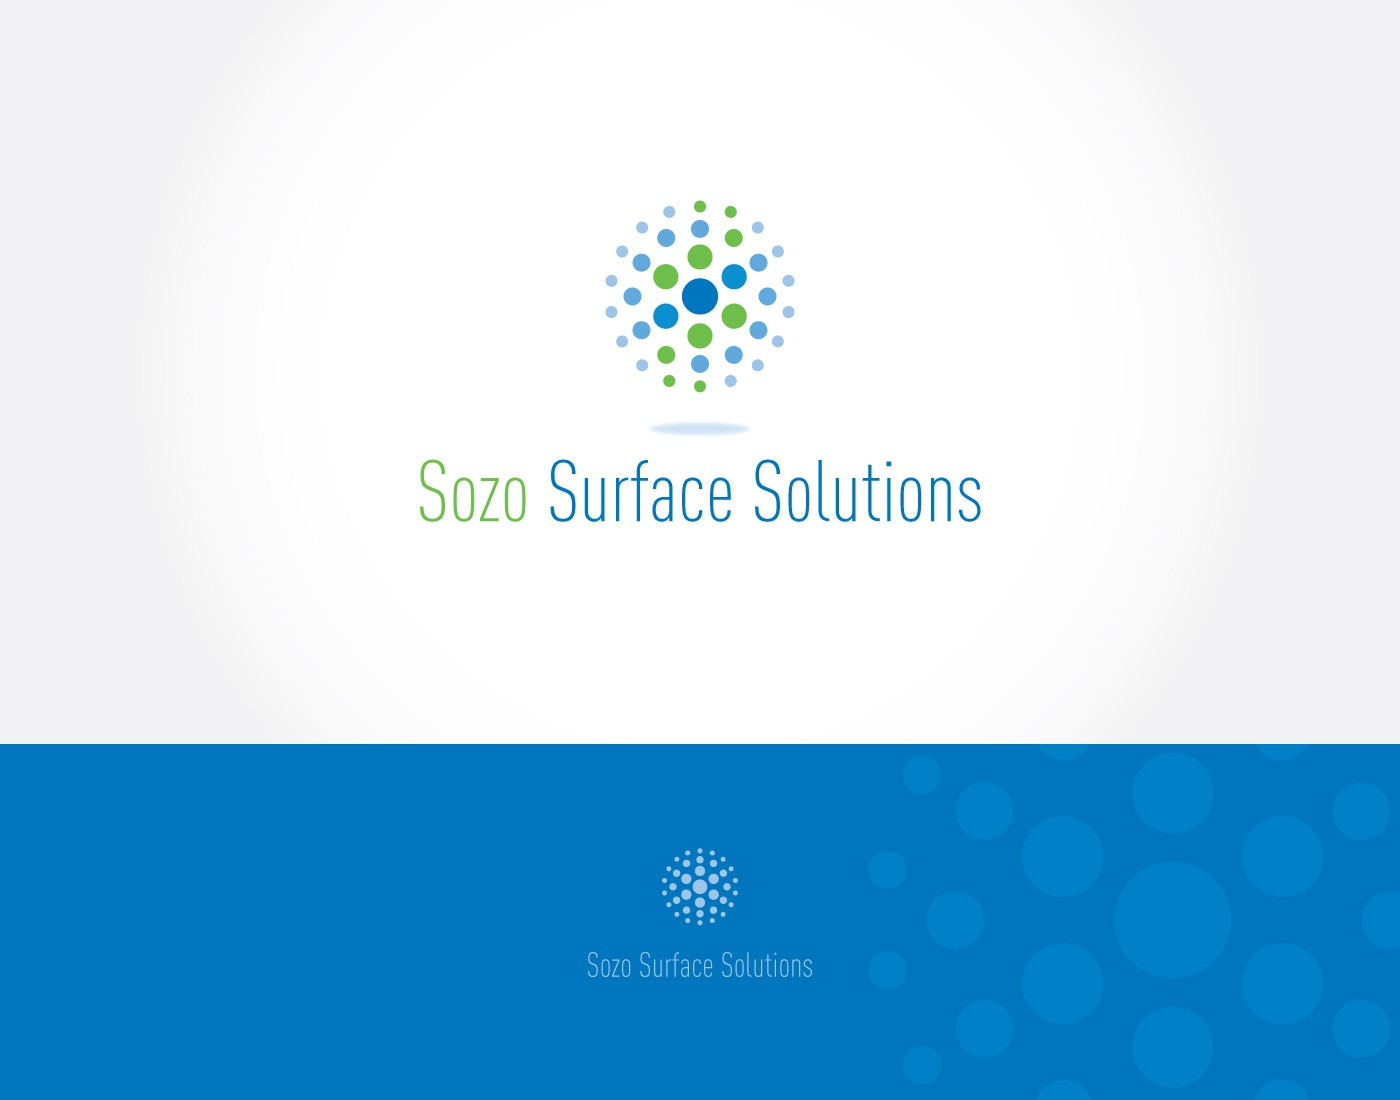 Sozo Surface Solutions